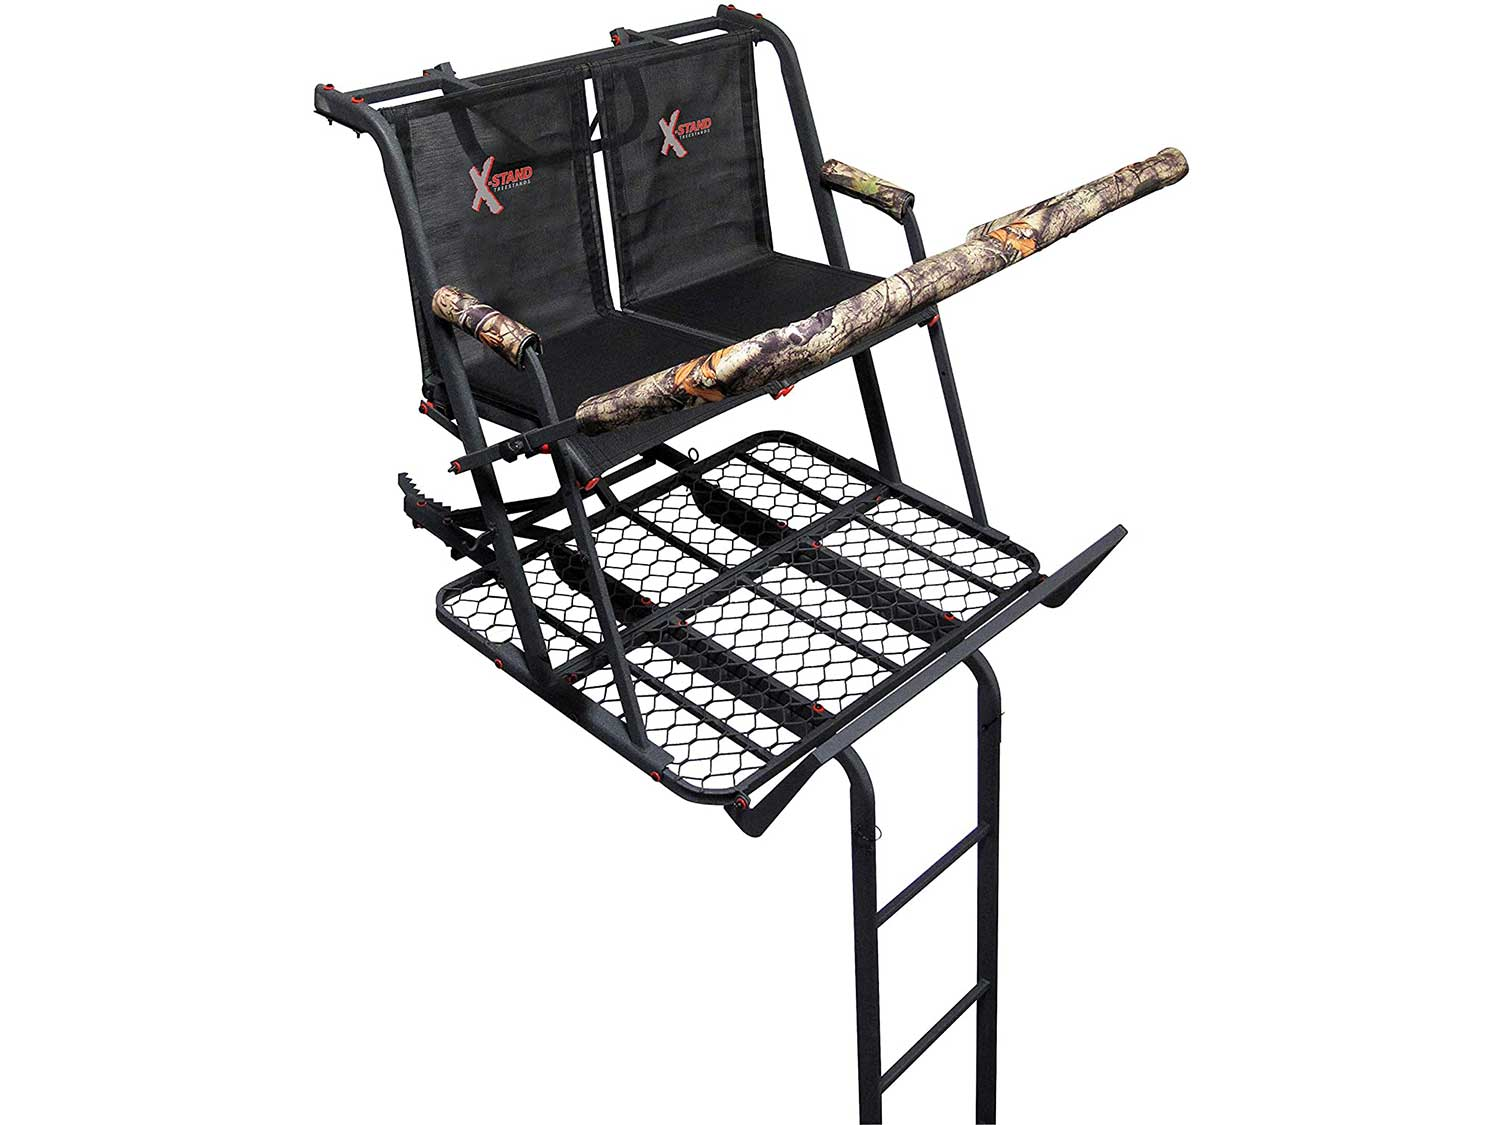 X-Stand Treestands The Jayhawk 20' Two Man Ladderstand